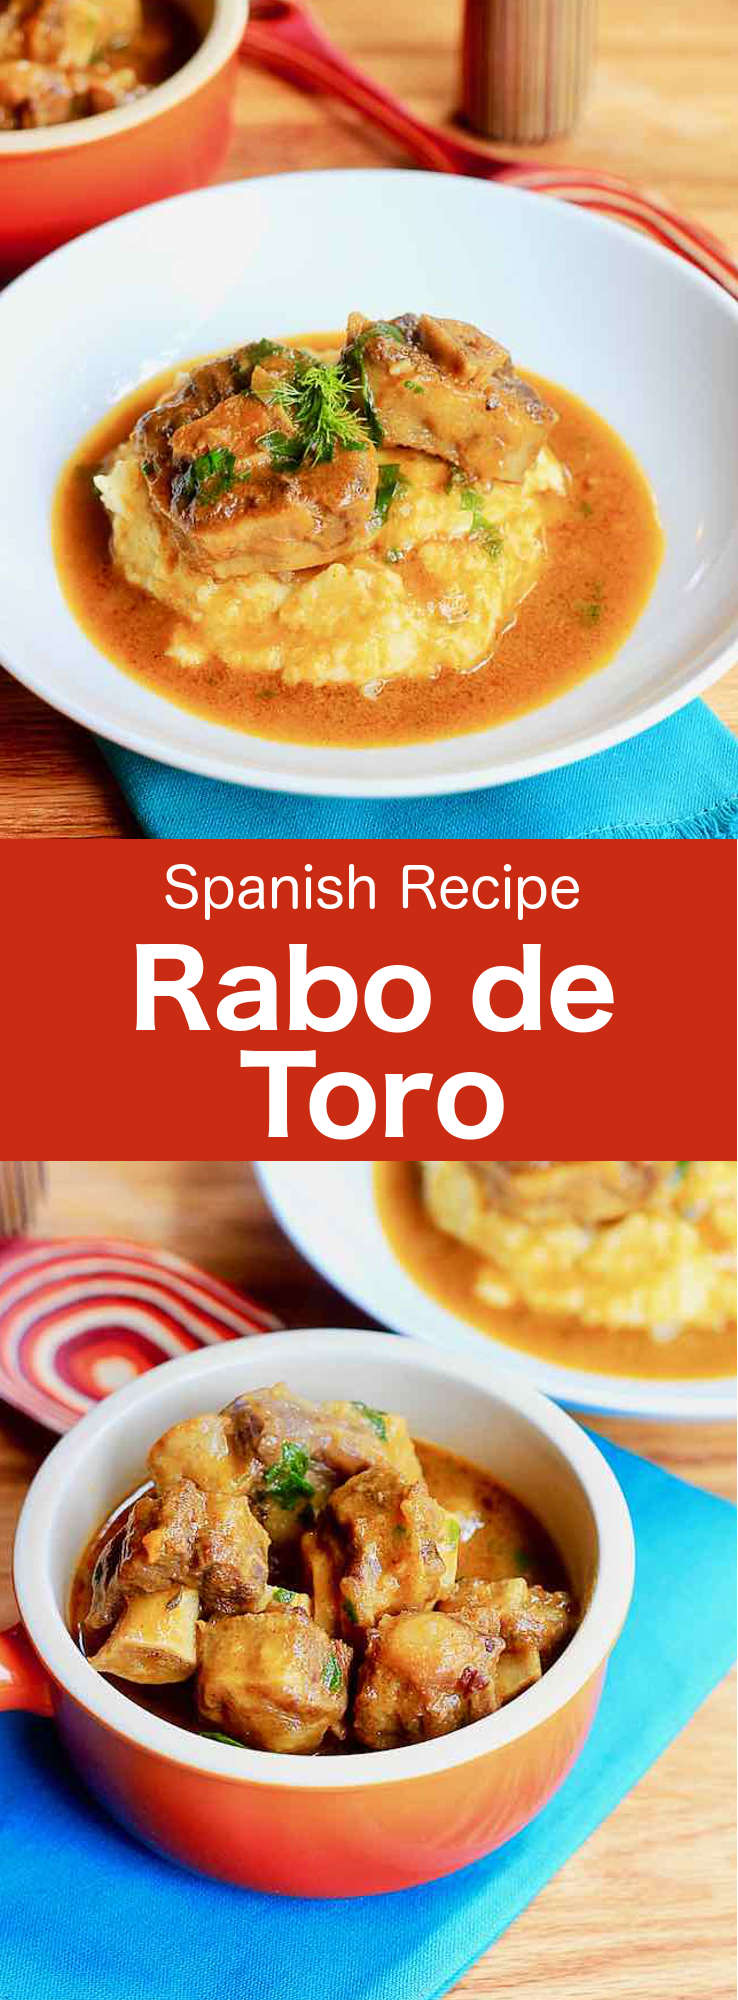 Rabo de toro is a Spanish oxtail stew that is slow cooked for delicious fall-off-the-bone meat that is infused with red wine, garlic, and thyme aromas. #SpanishCuisine #Spain #SpanishRecipe #SpanishFood #WorldCuisine #196flavors